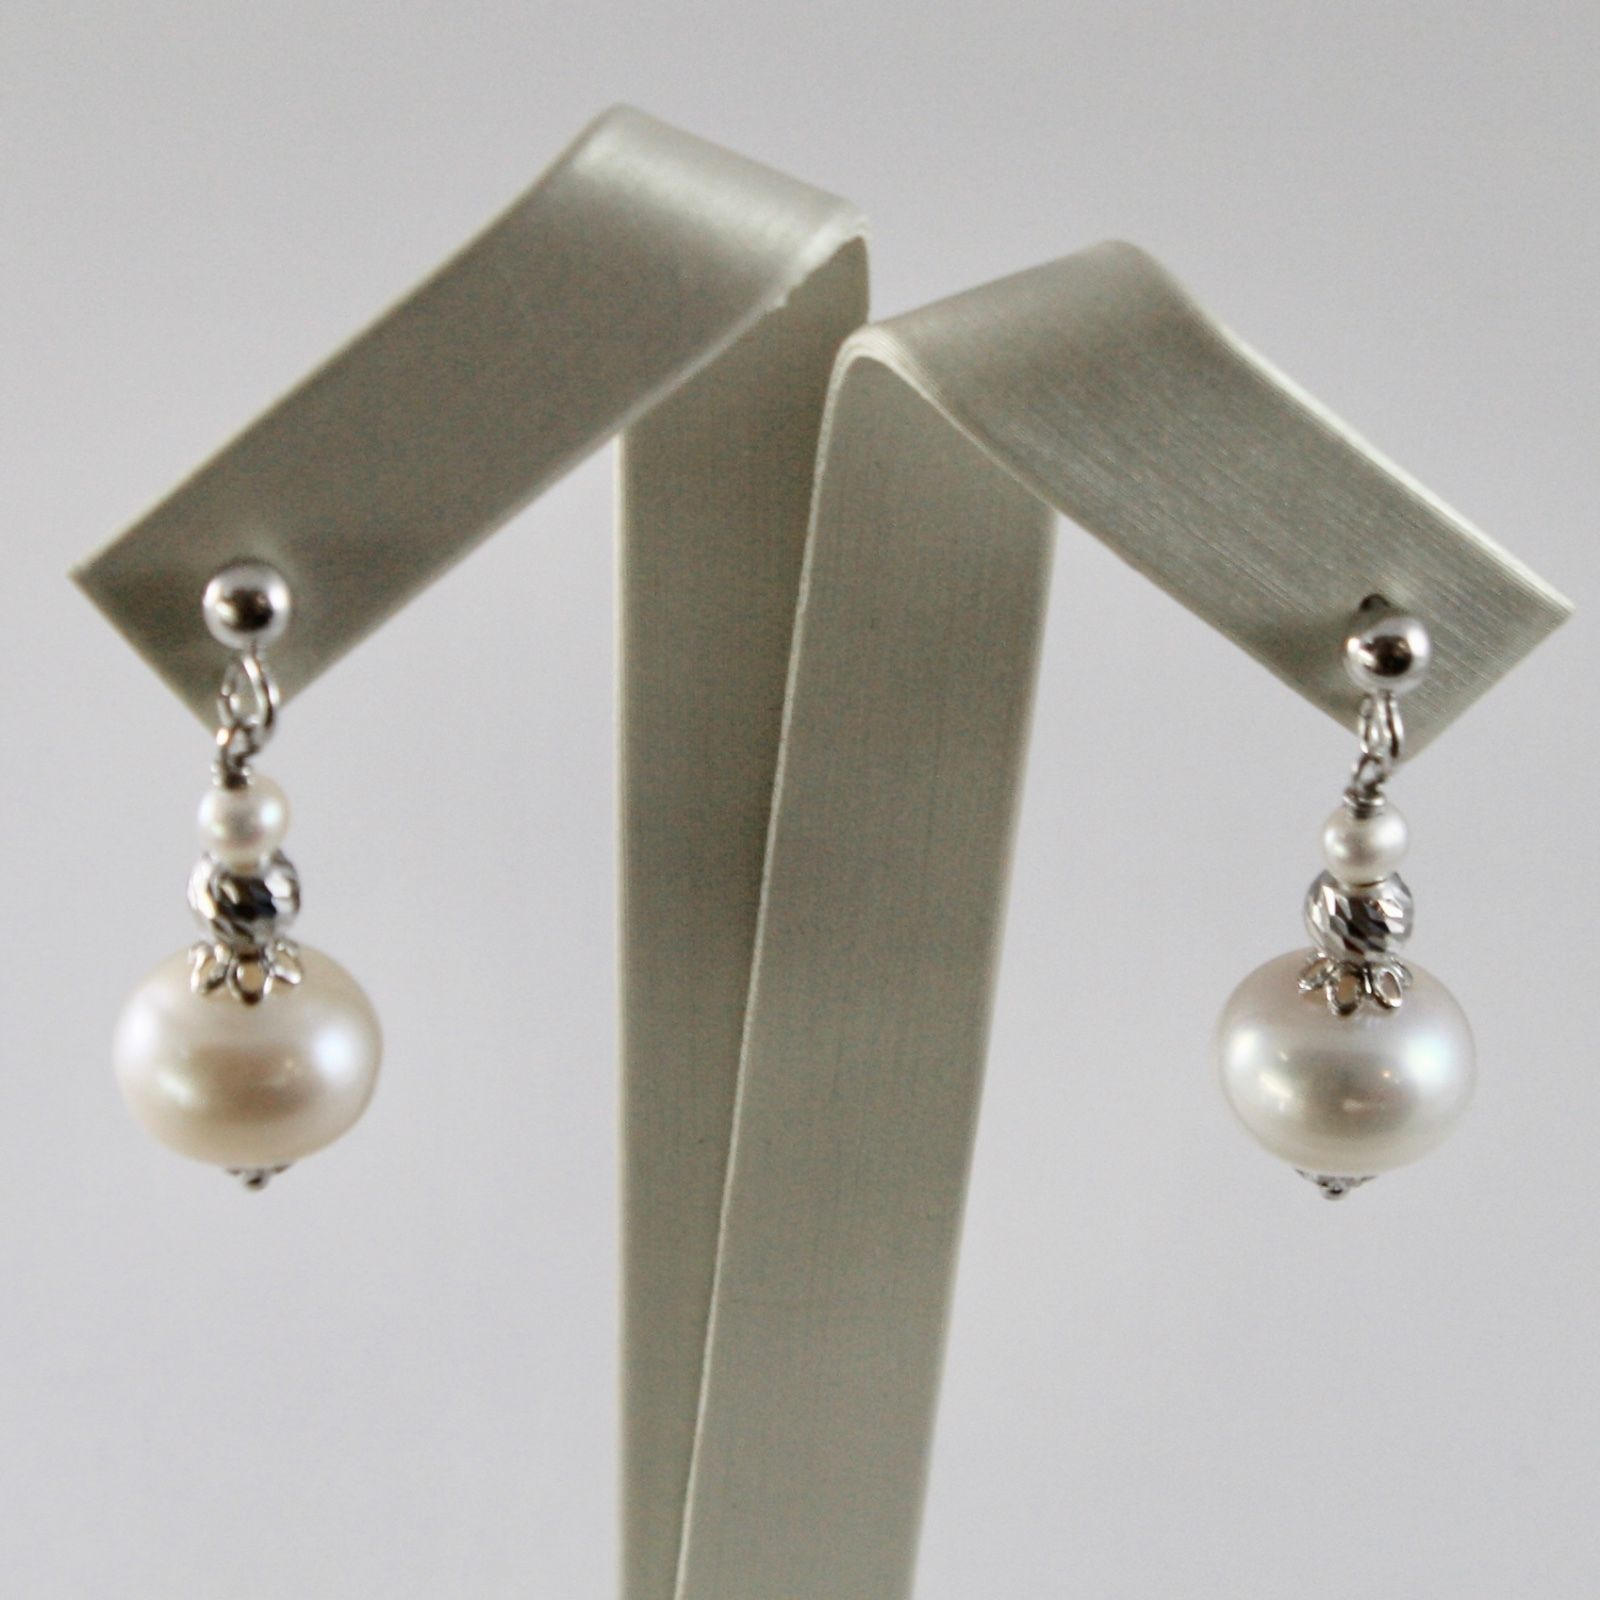 EARRINGS SILVER 925 WITH WHITE PEARLS OF WATER SWEET AND SPHERES FACETED